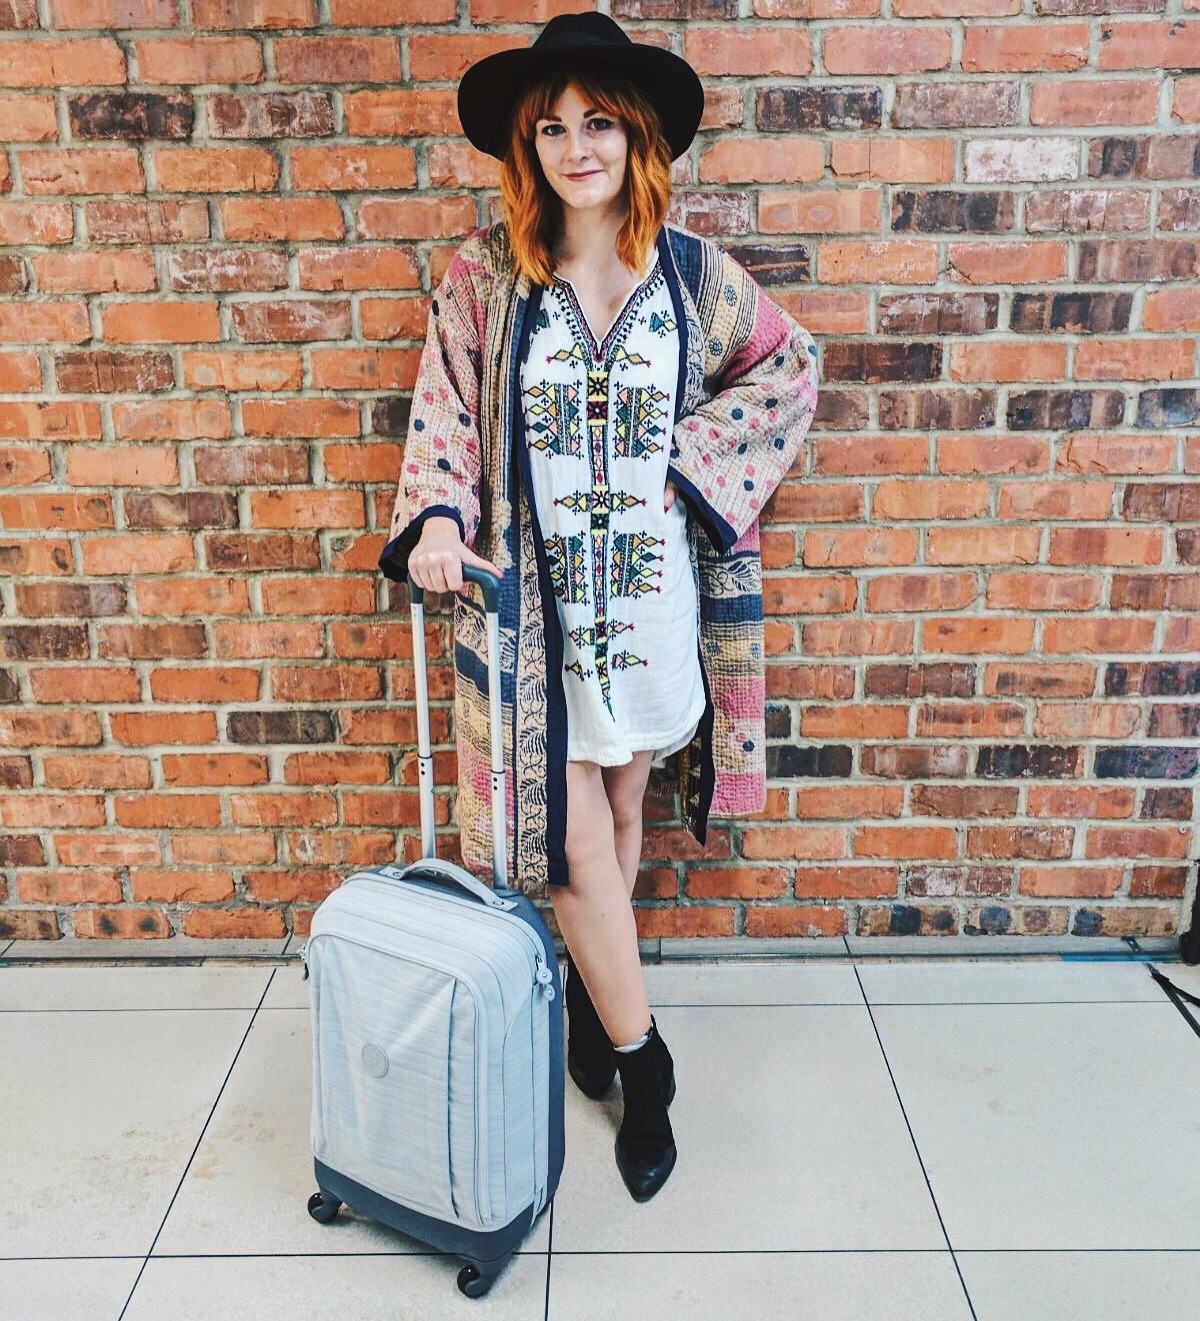 Super Hybrid Suitcase by Kipling